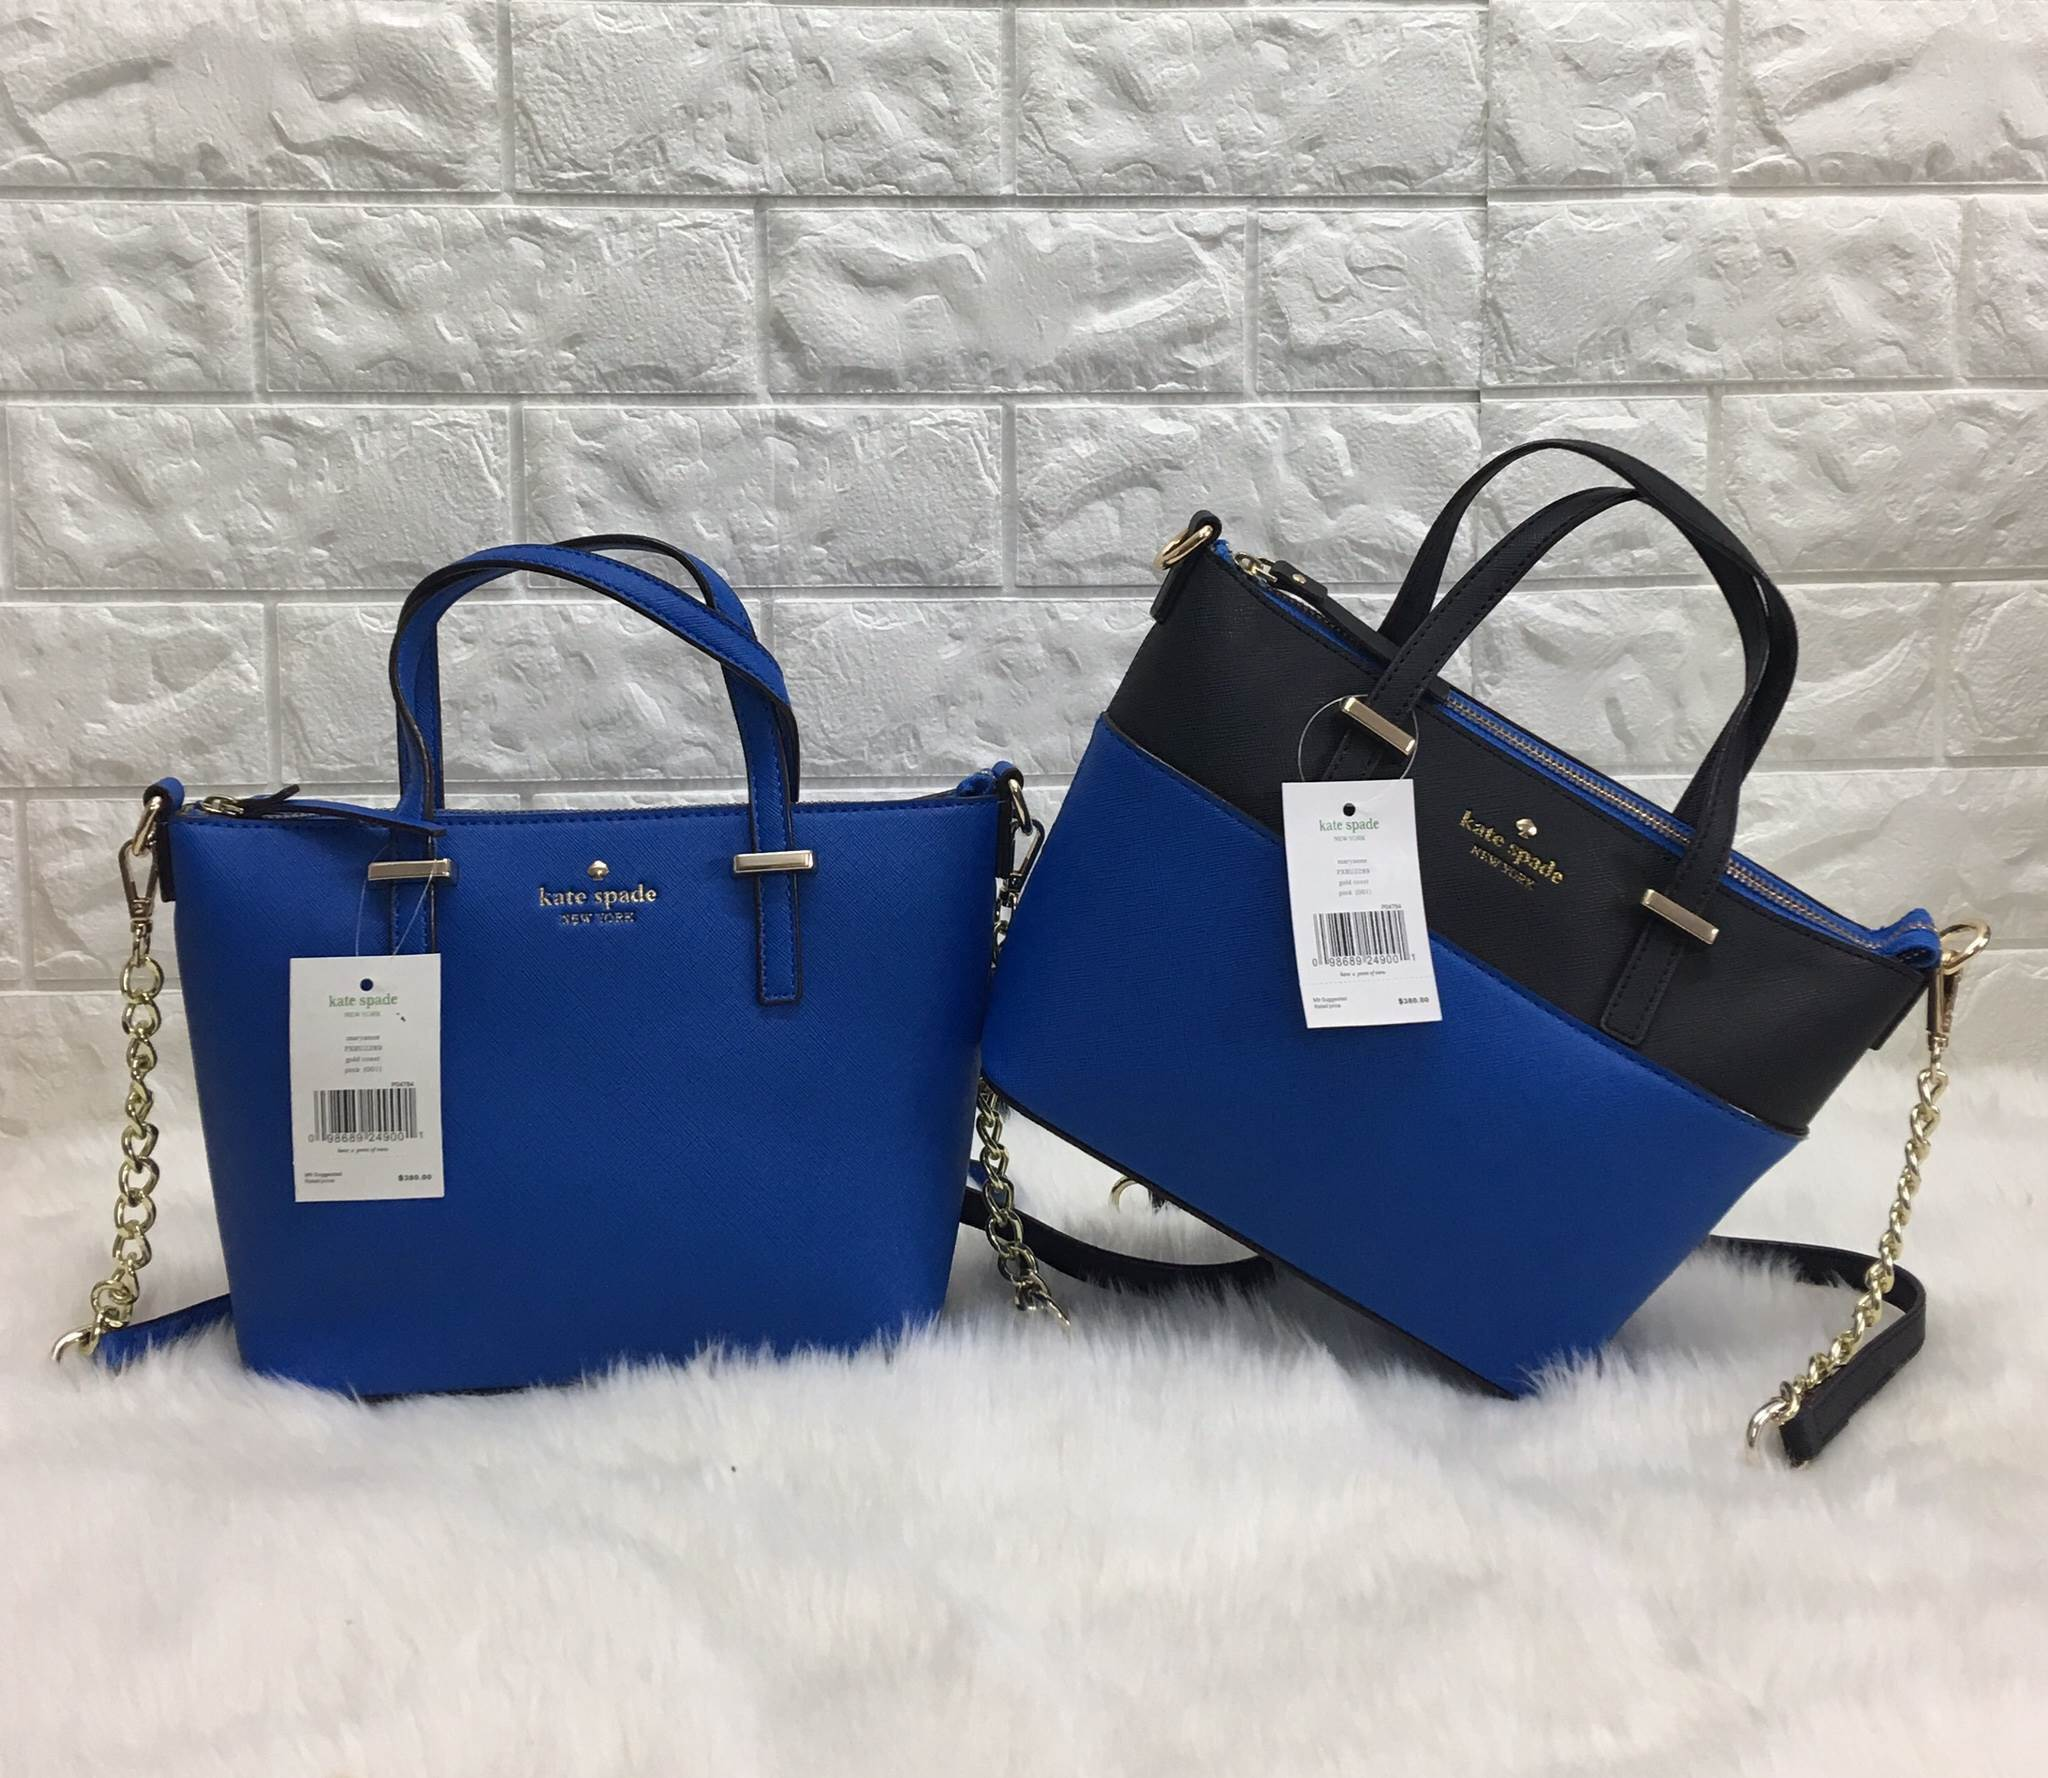 New In. Kate spade new york Saffiano Bag